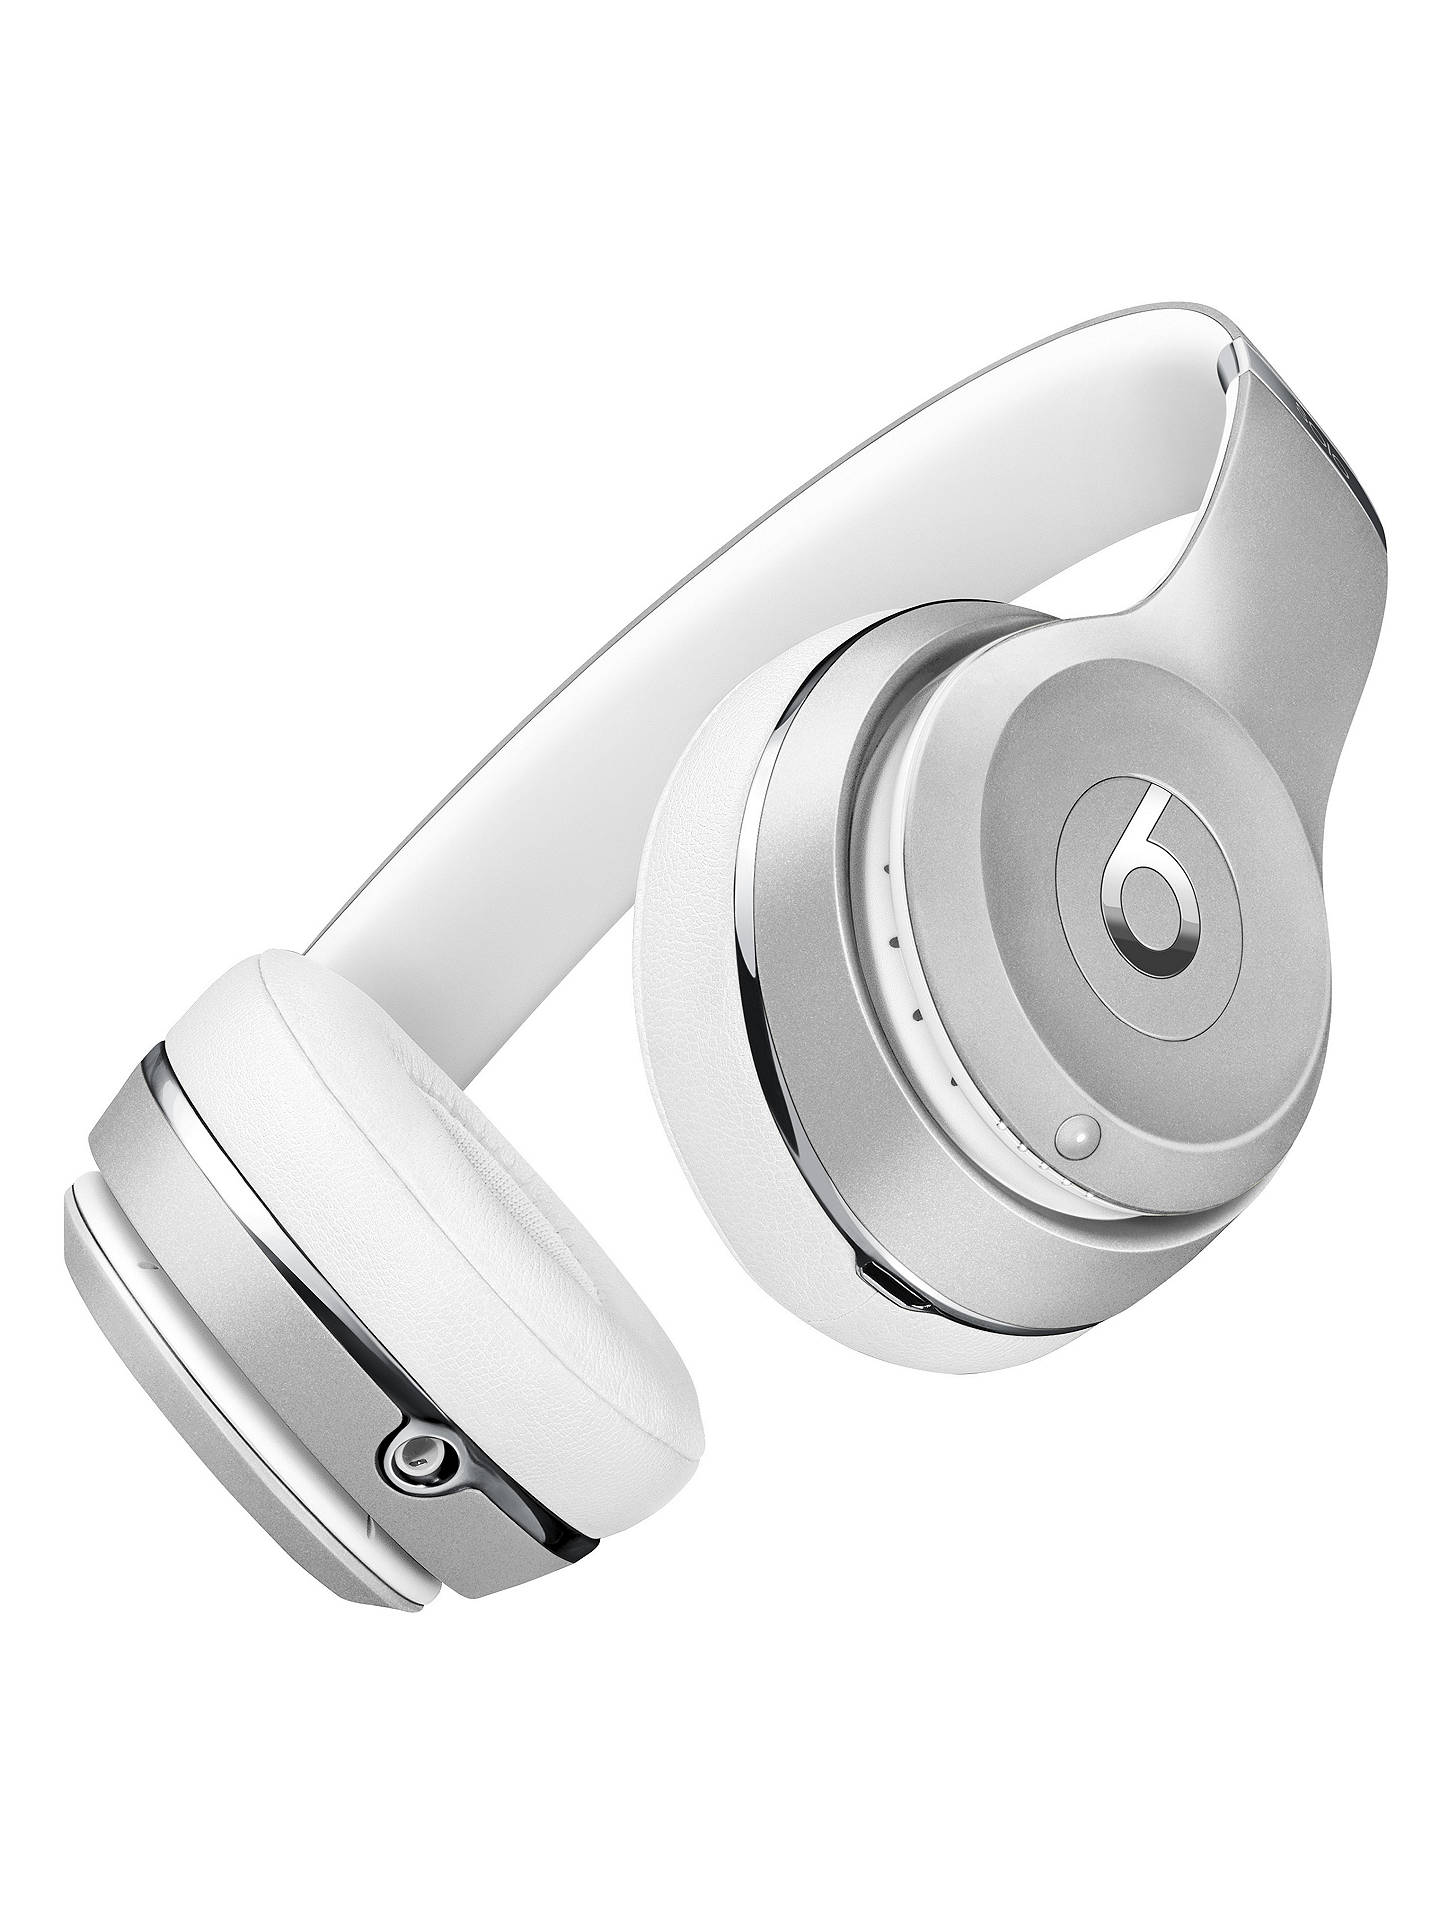 BuyBeats Solo³ Wireless Bluetooth On-Ear Headphones with Mic/Remote, Silver Online at johnlewis.com